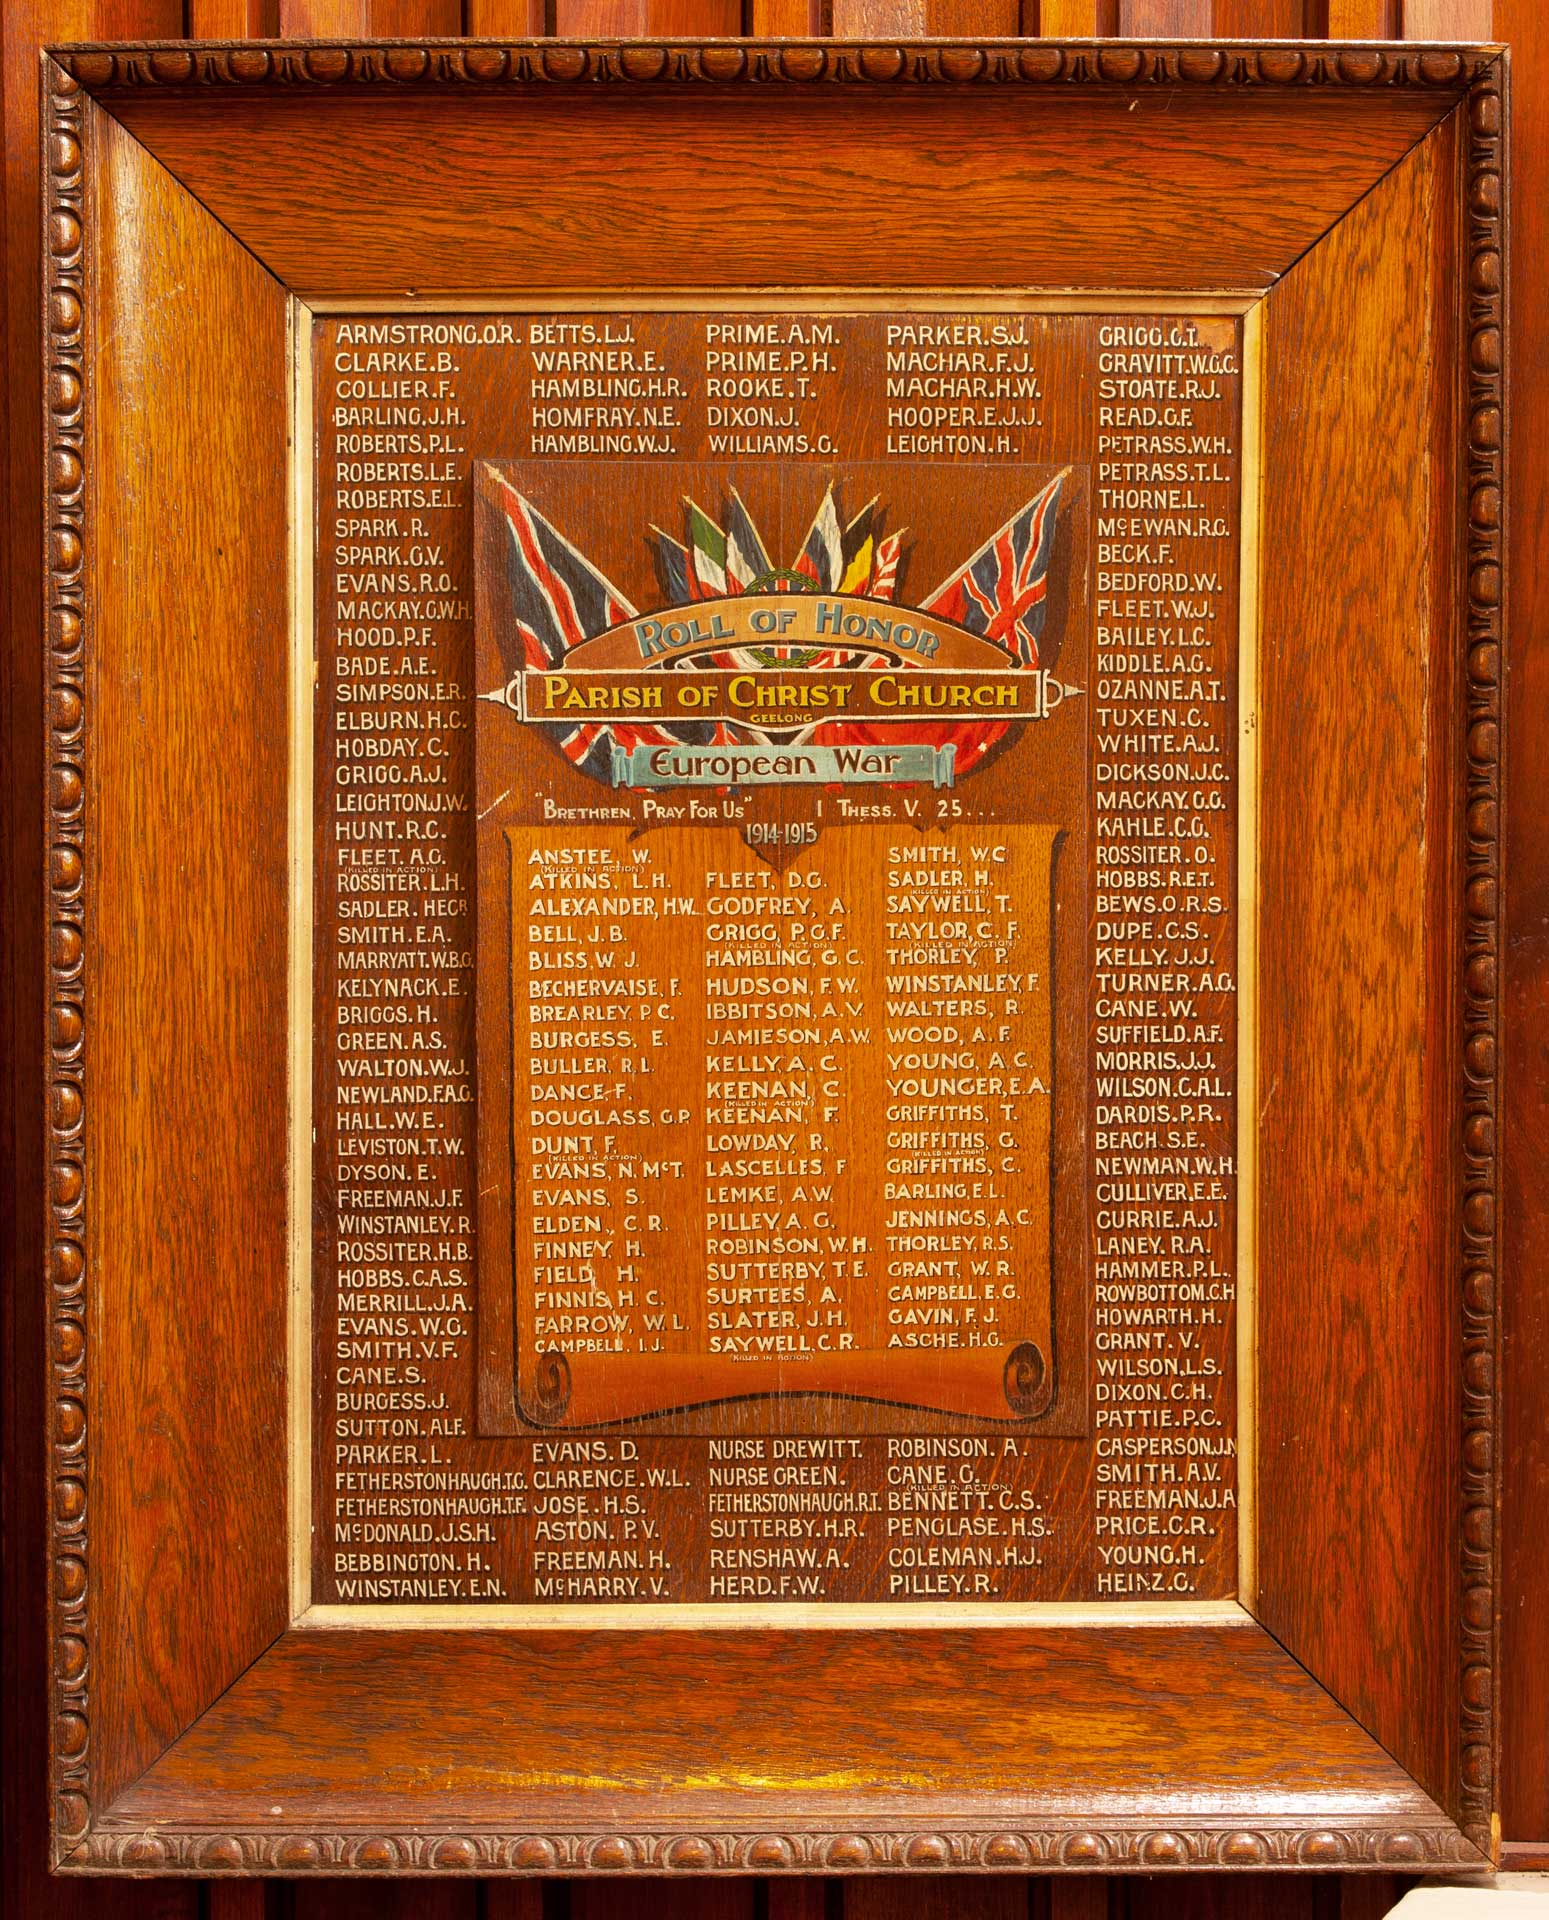 Parish of Christ Church Geelong Roll of Honor